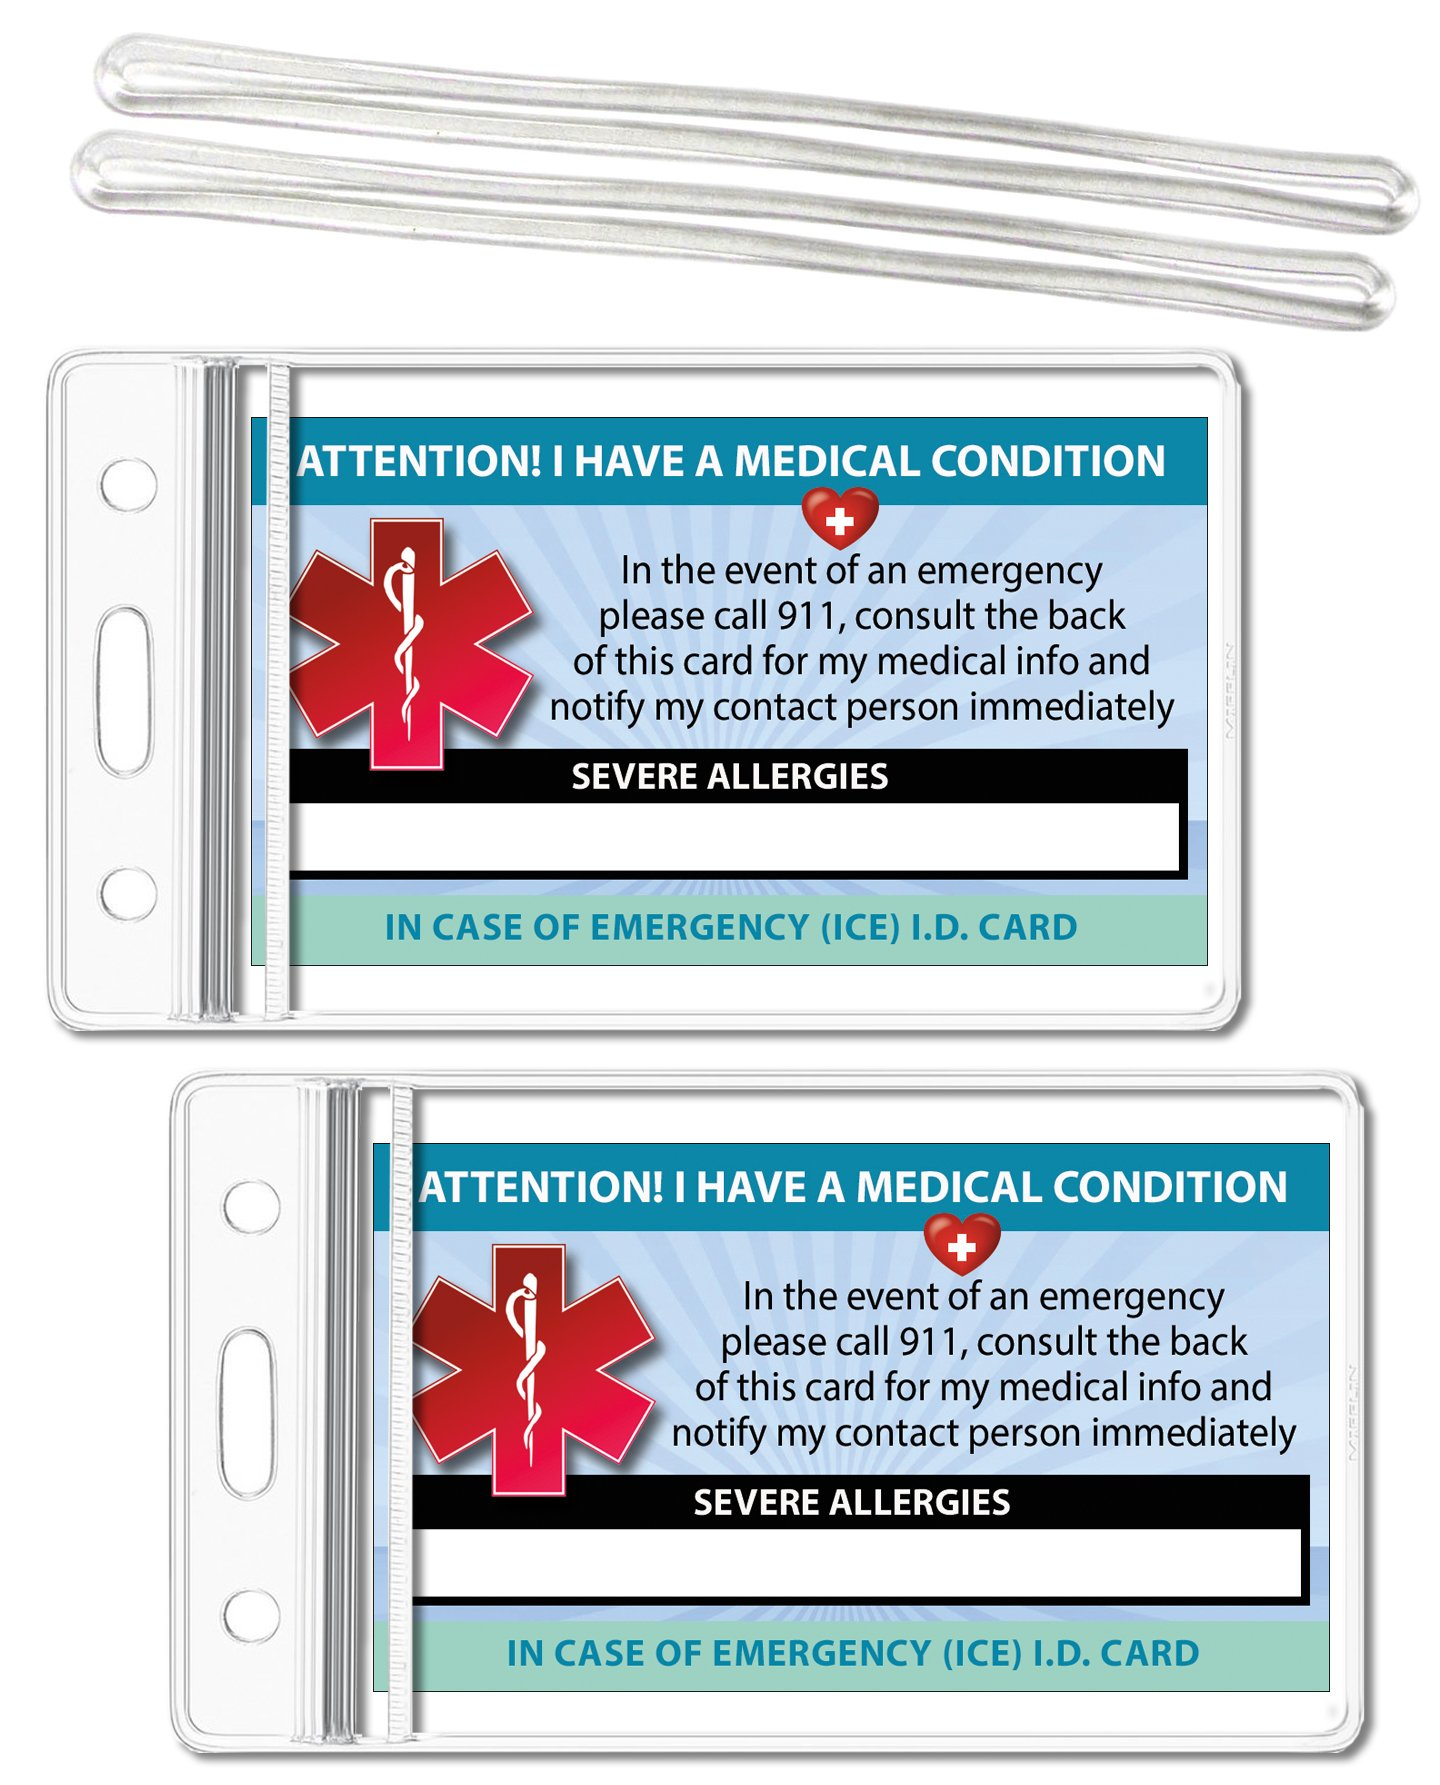 Severe Allergies Medical Condition ICE Alert in Case of Emergency I.D. Identification Wallet Card Heavyweight 32 Pt. CardStock - Our Thickest (Qty. 2 w/Sealable Pouches)